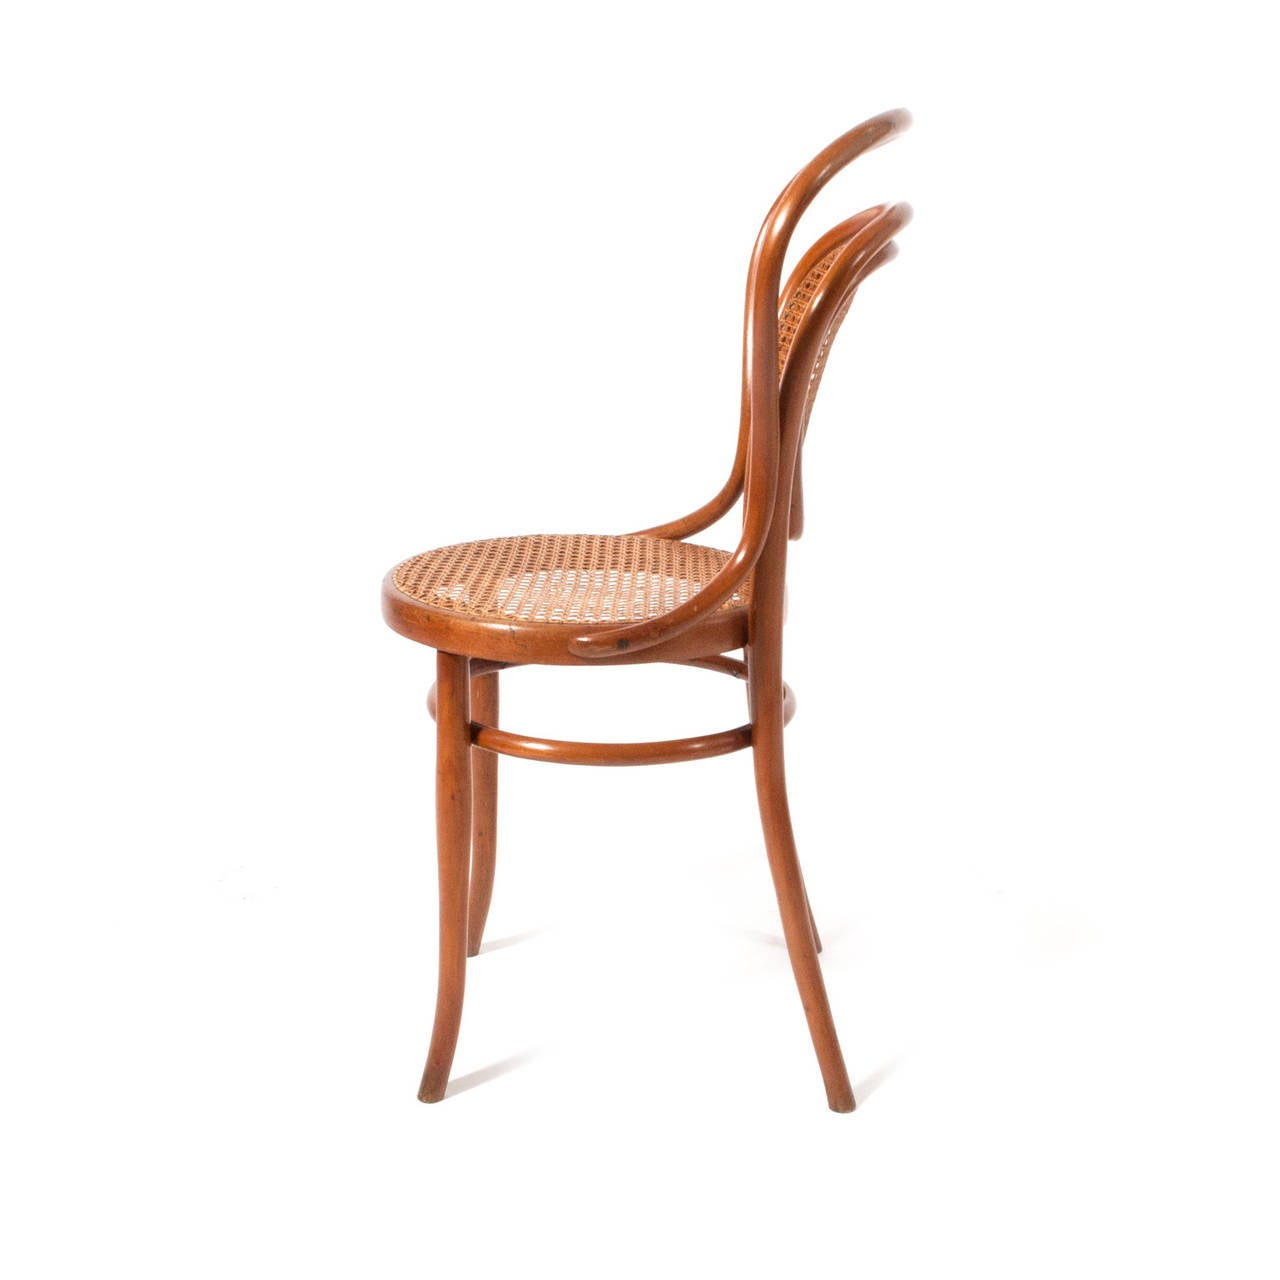 Orly j and j kohn bentwood chair 1900 for sale at 1stdibs